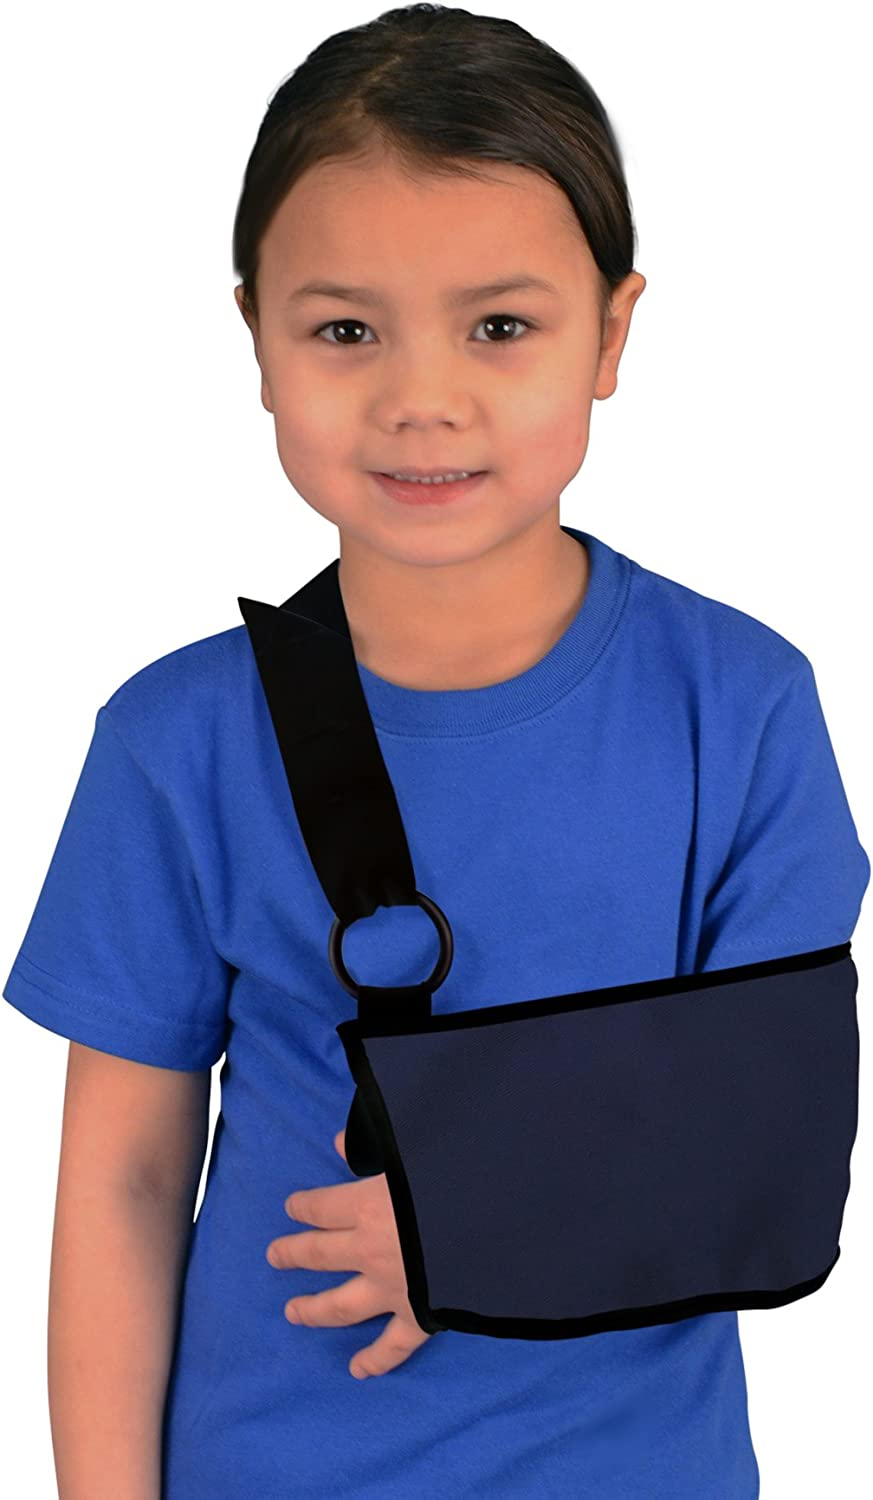 Mars Wellness Pediatric Kids Medical Limited time trial Store price Shoulder and Arm Ad Sling -